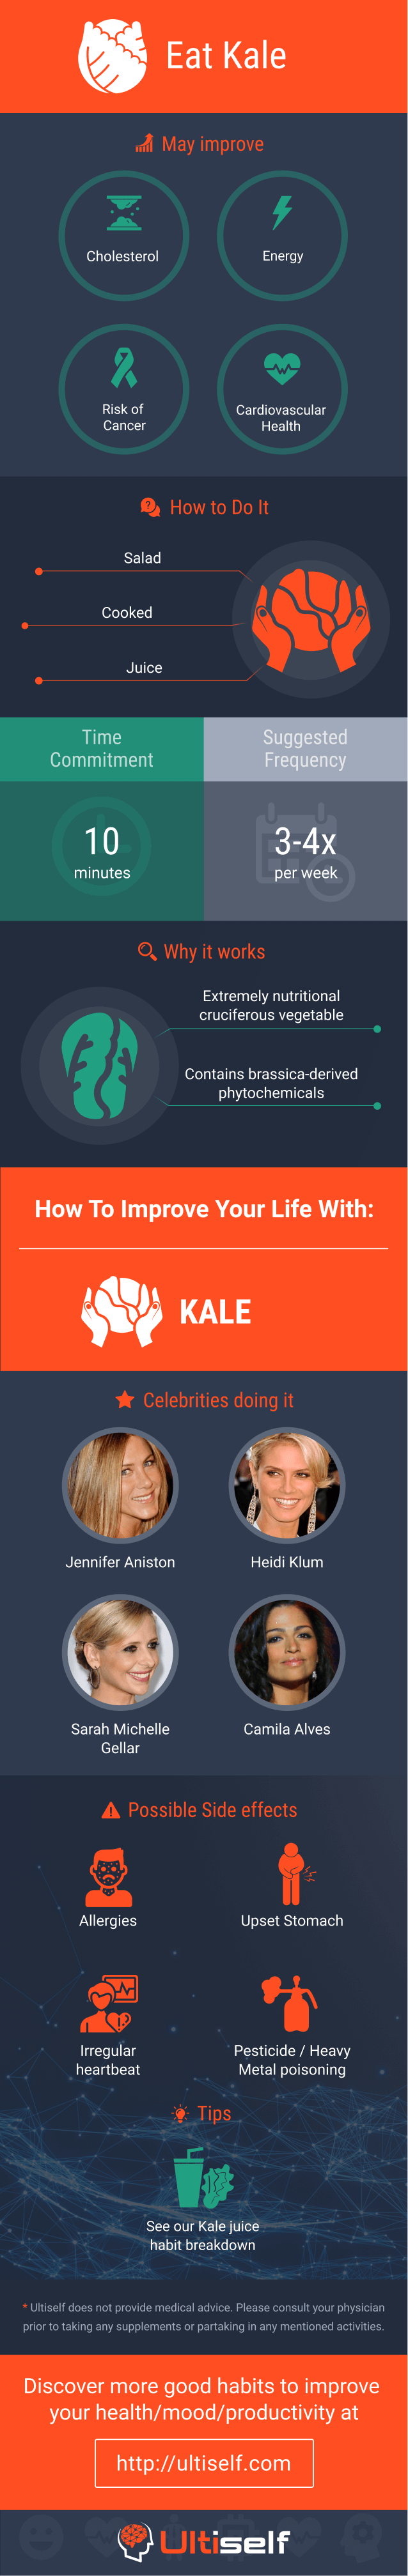 Eat Kale infographic